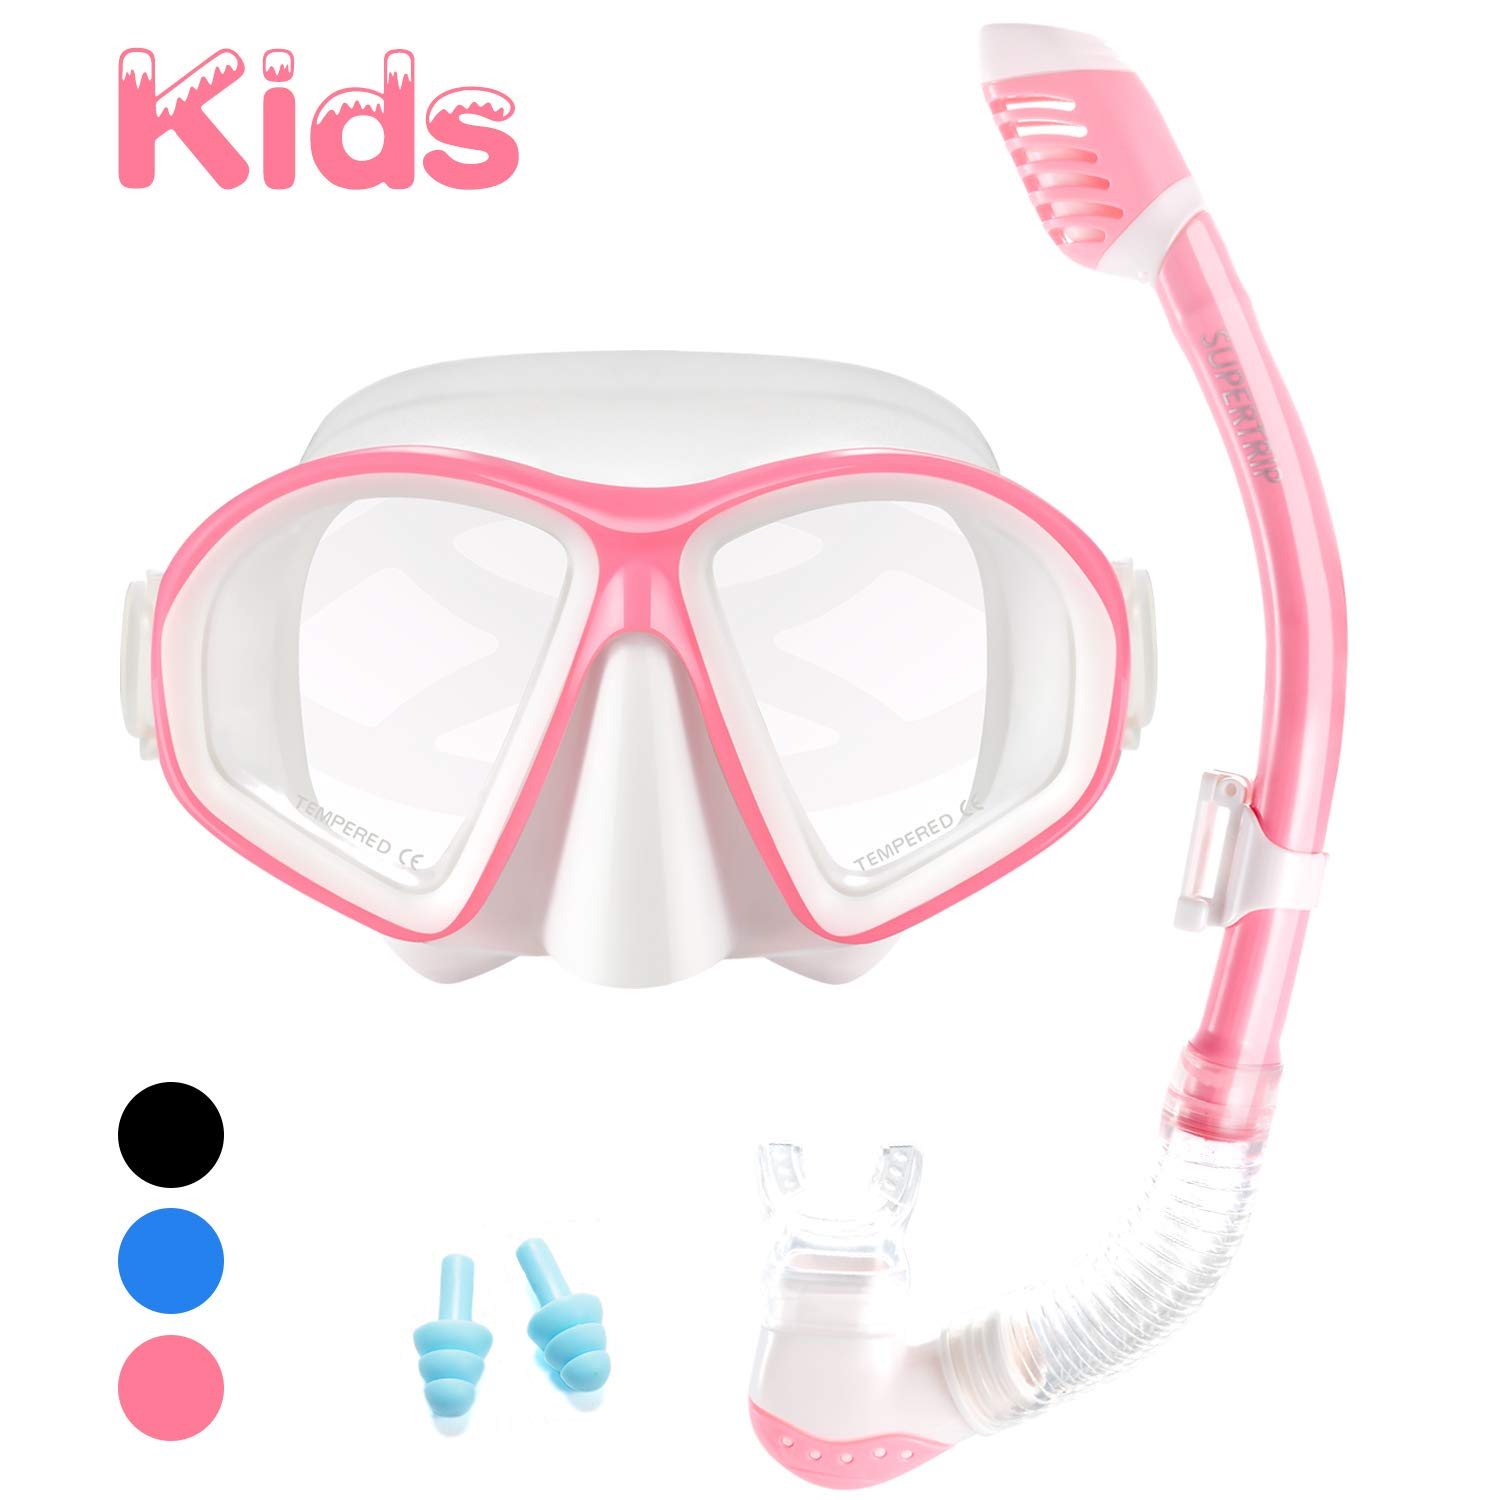 Supertrip Kids Snorkel Set-Scuba Dry Top Diving Mask Anti-Leak Impact Resistant Panoramic Tempered Glass Easybreath Snorkeling Packages Professional Swimming gear for Youth Boys and Girls (White pink) by Supertrip